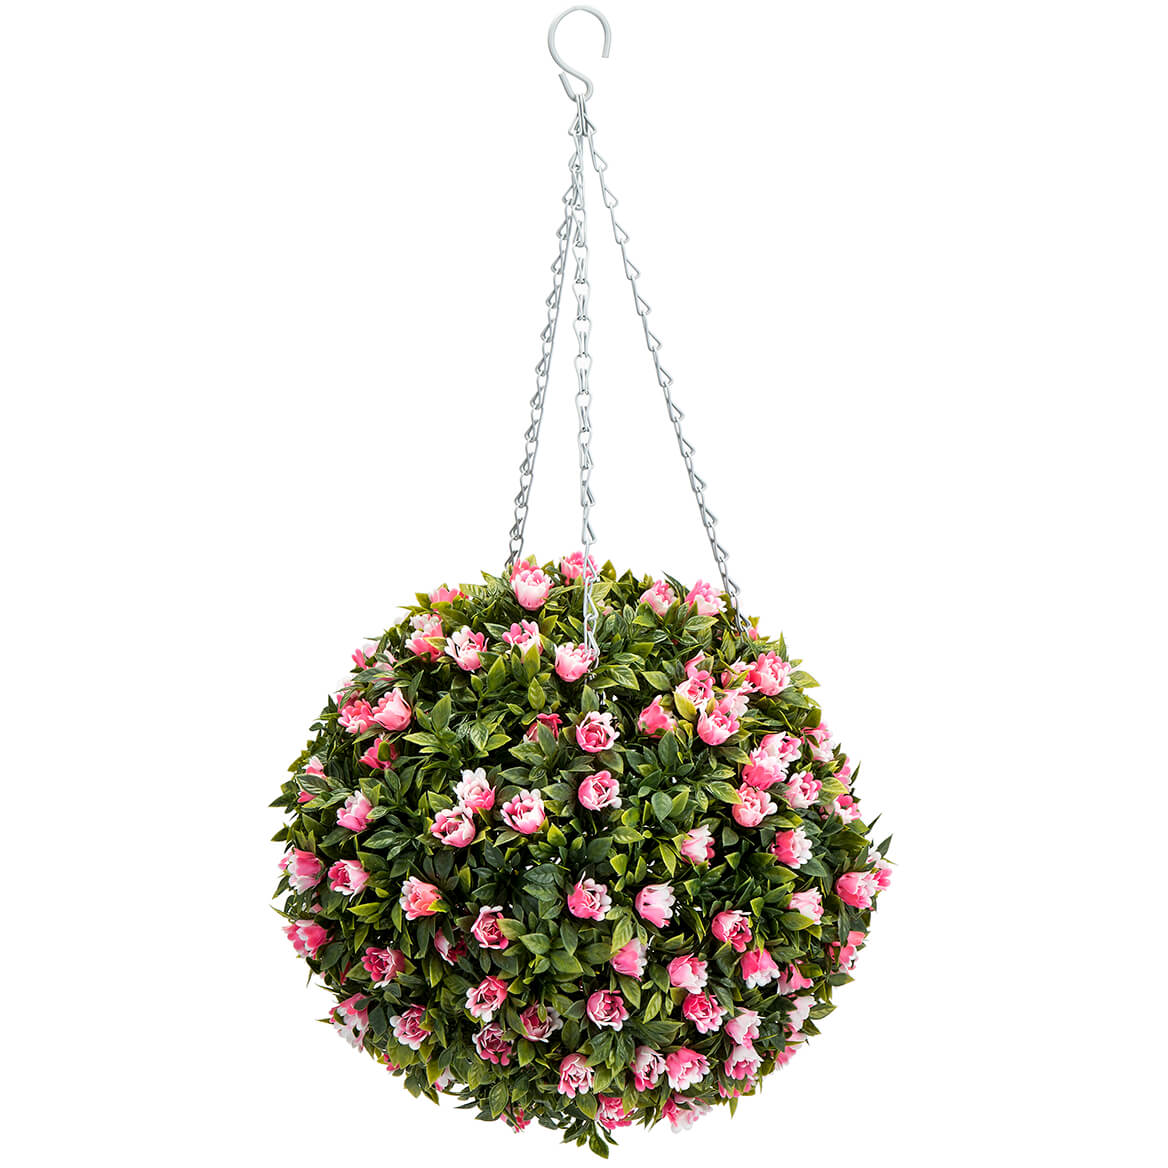 Hanging Rose Topiary Ball by OakRidge™-368833